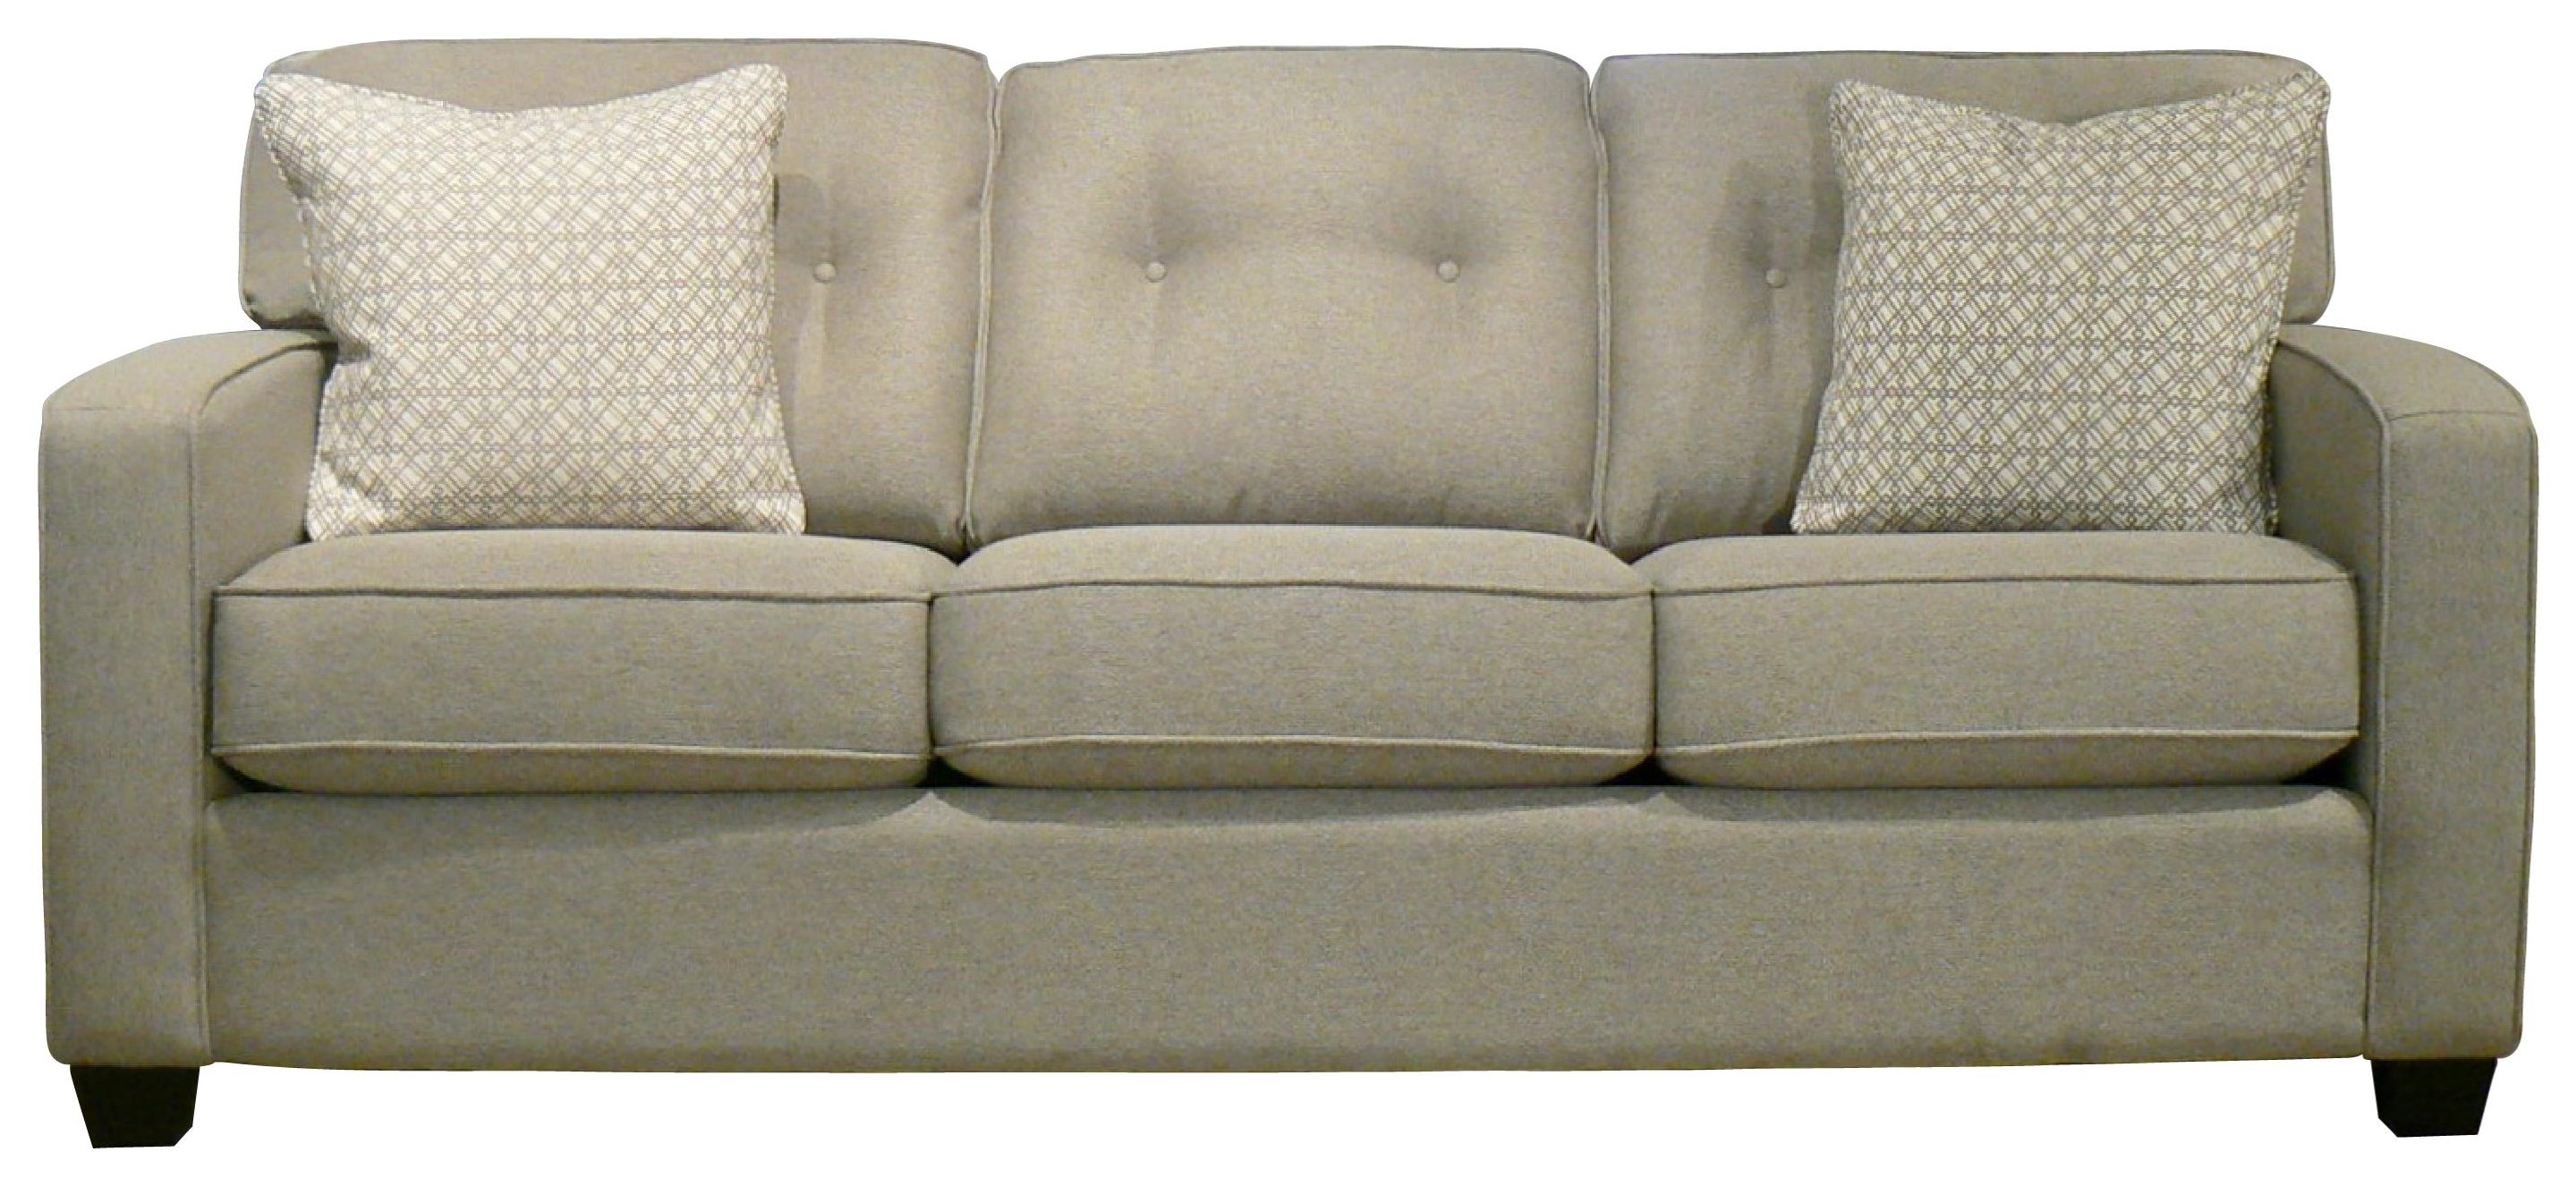 Shelby Sofa by Taelor Designs at Bennett's Furniture and Mattresses